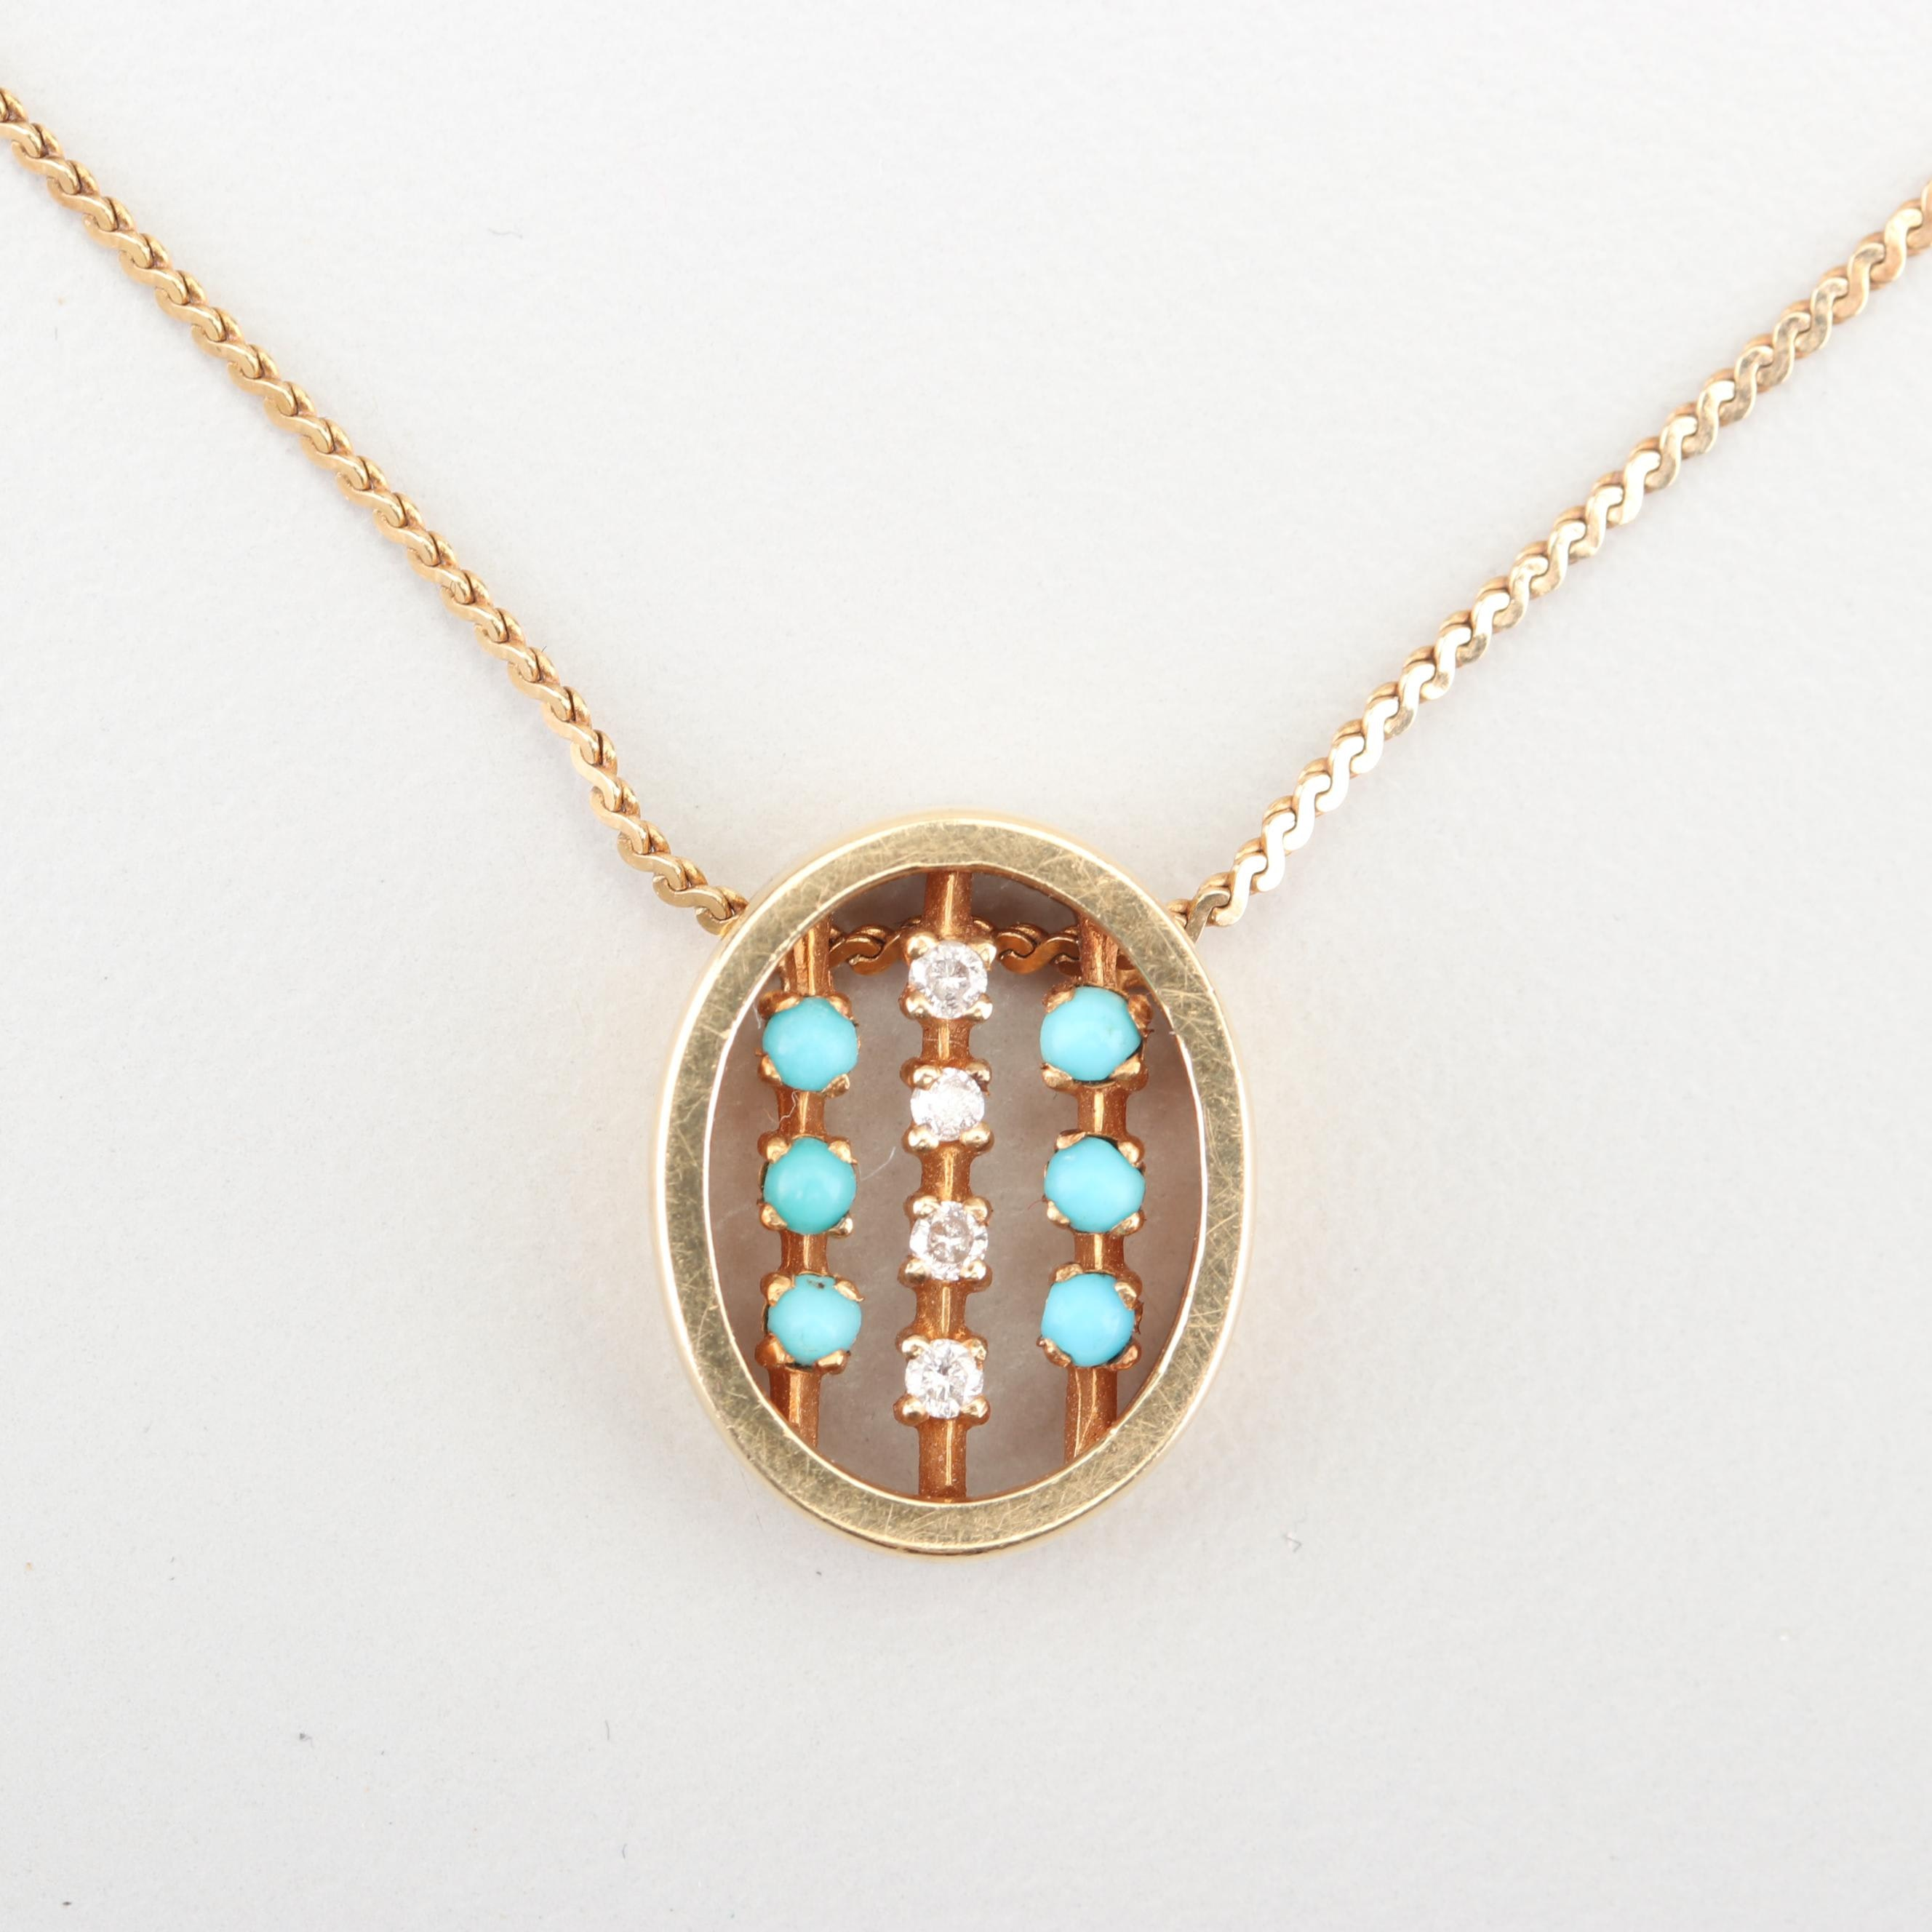 14K Yellow Gold Diamond and Turquoise Pendant Necklace